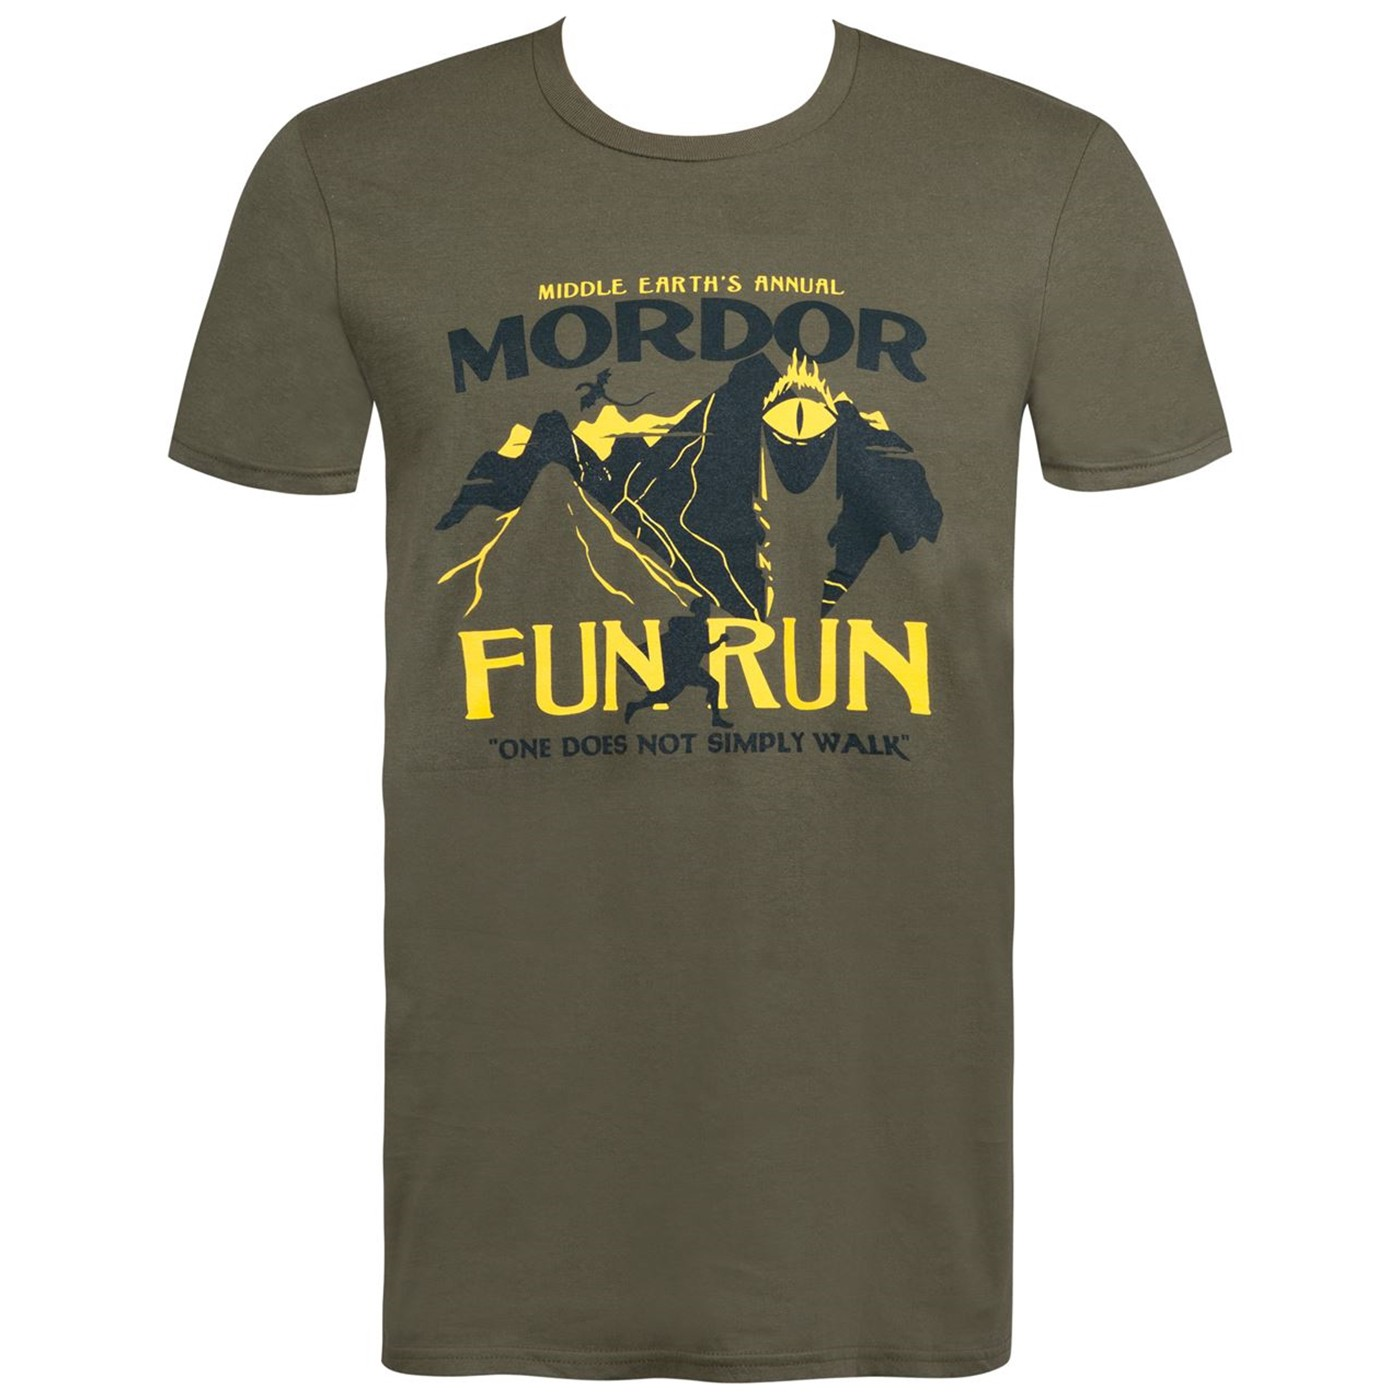 Mordor Fun Run Men's T-Shirt